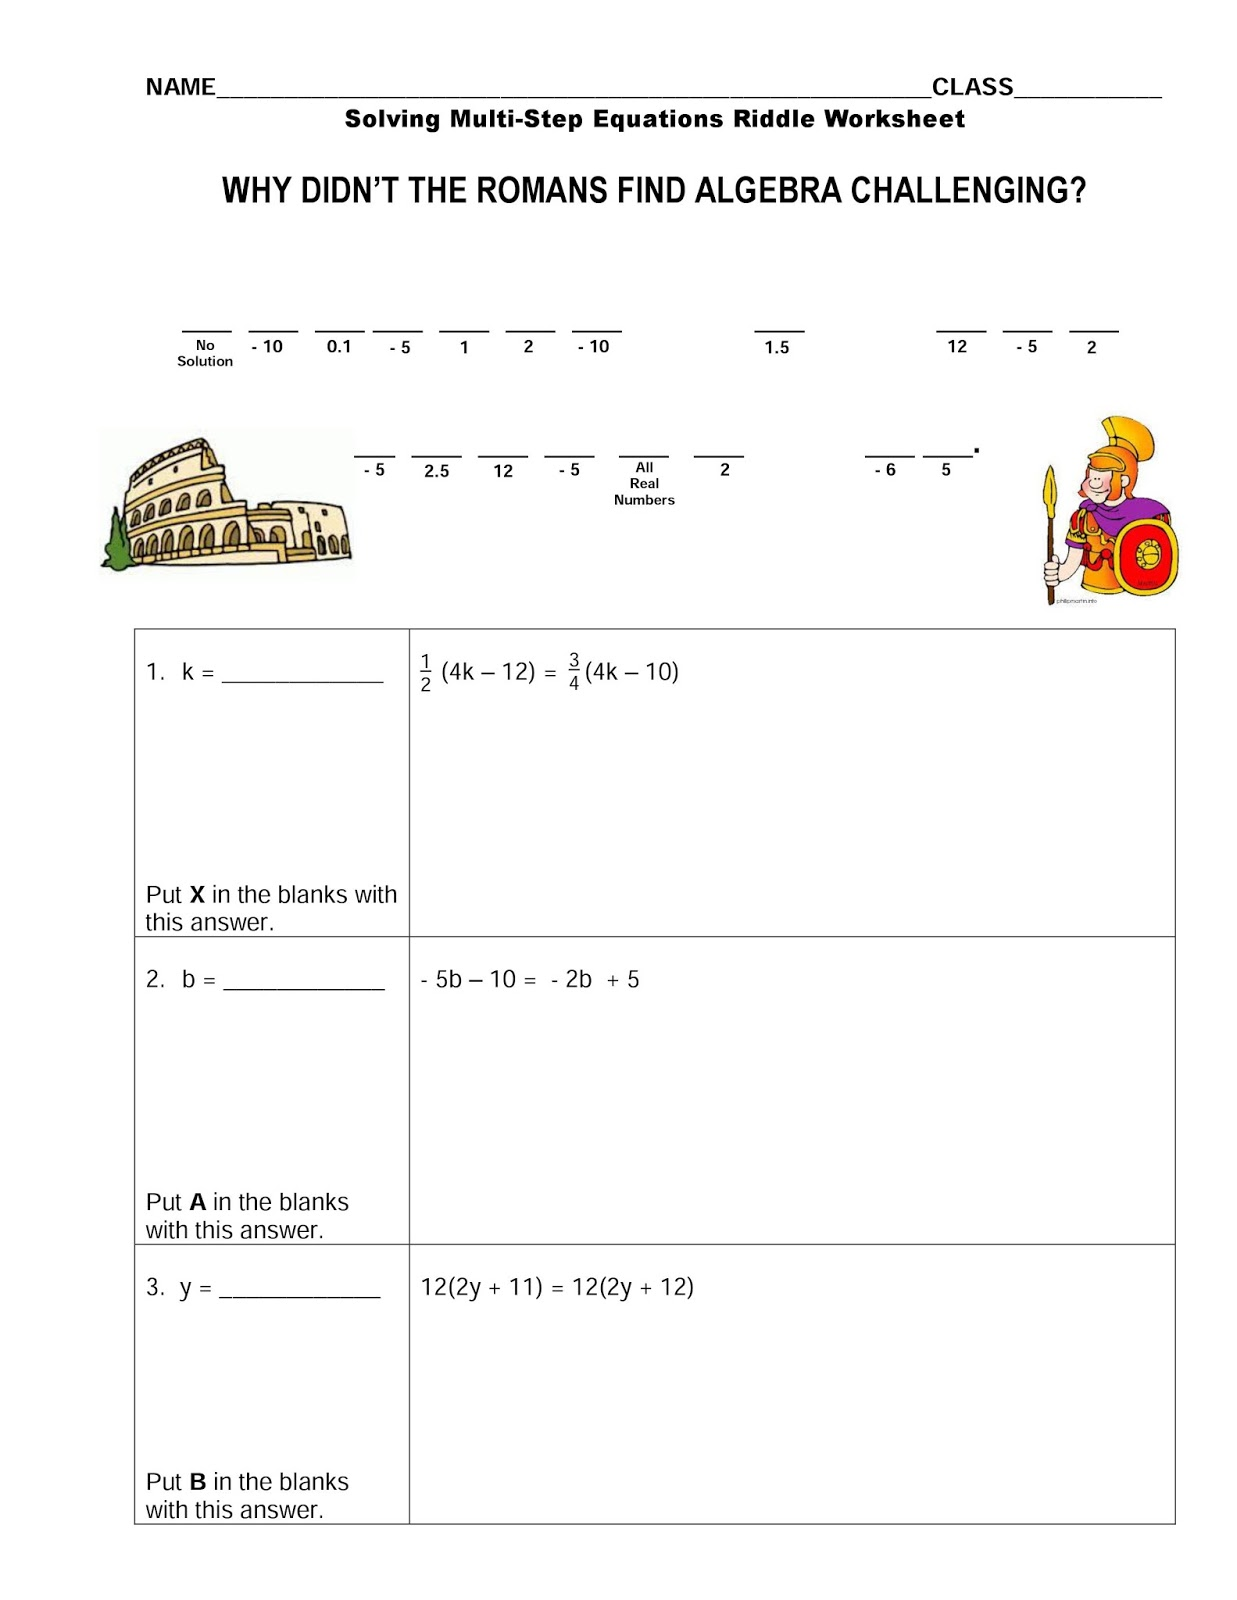 Solving Equations Flipbook